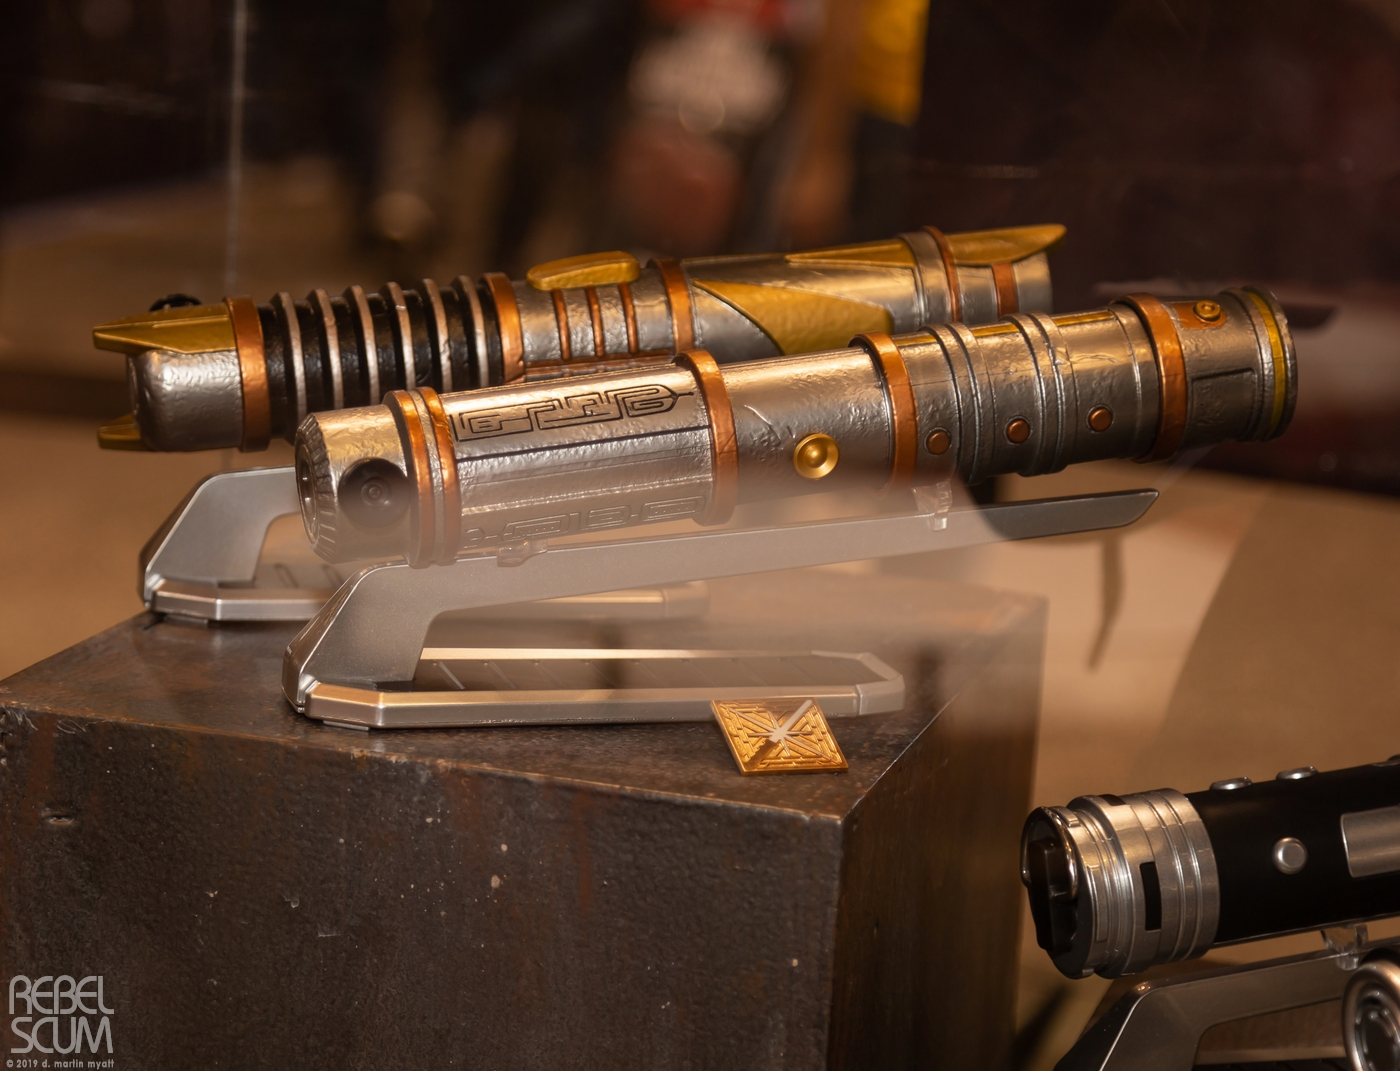 Galaxys-Edge-Star-Wars-Celebration-Chicago-Lightsabers-01